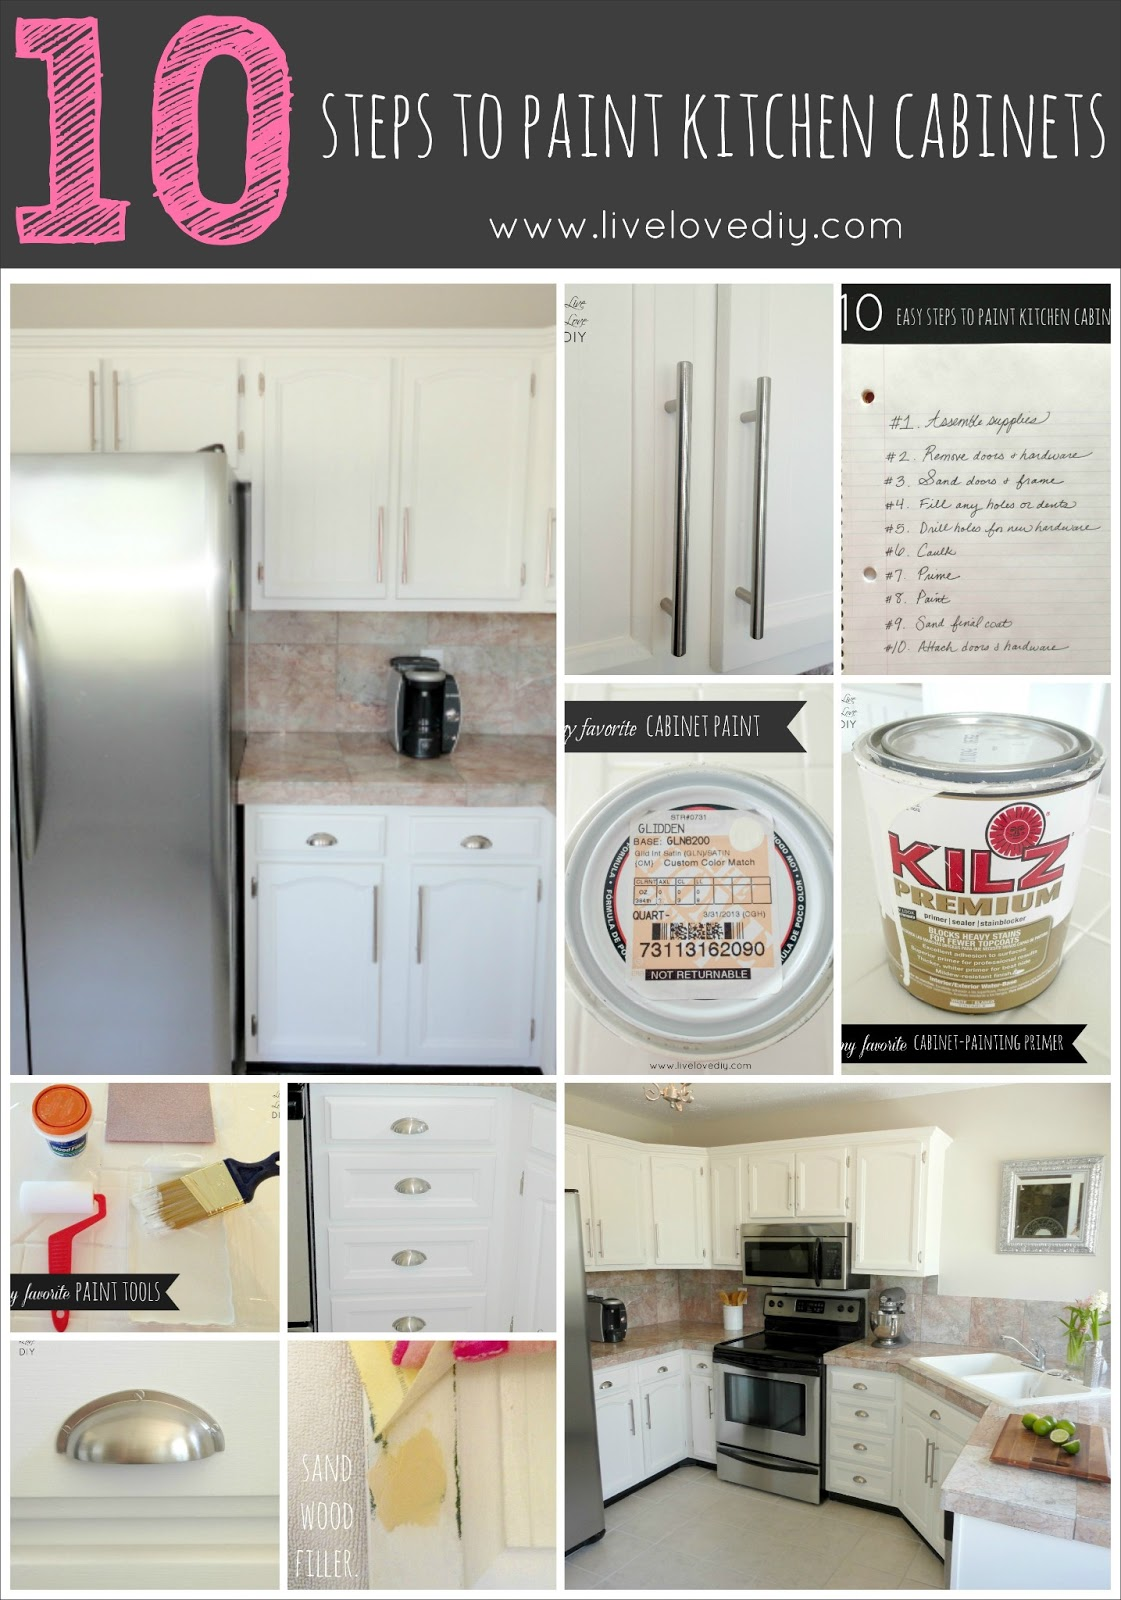 Diy Painted Kitchen Cabinets Before And After livelovediy: how to paint kitchen cabinets in 10 easy steps